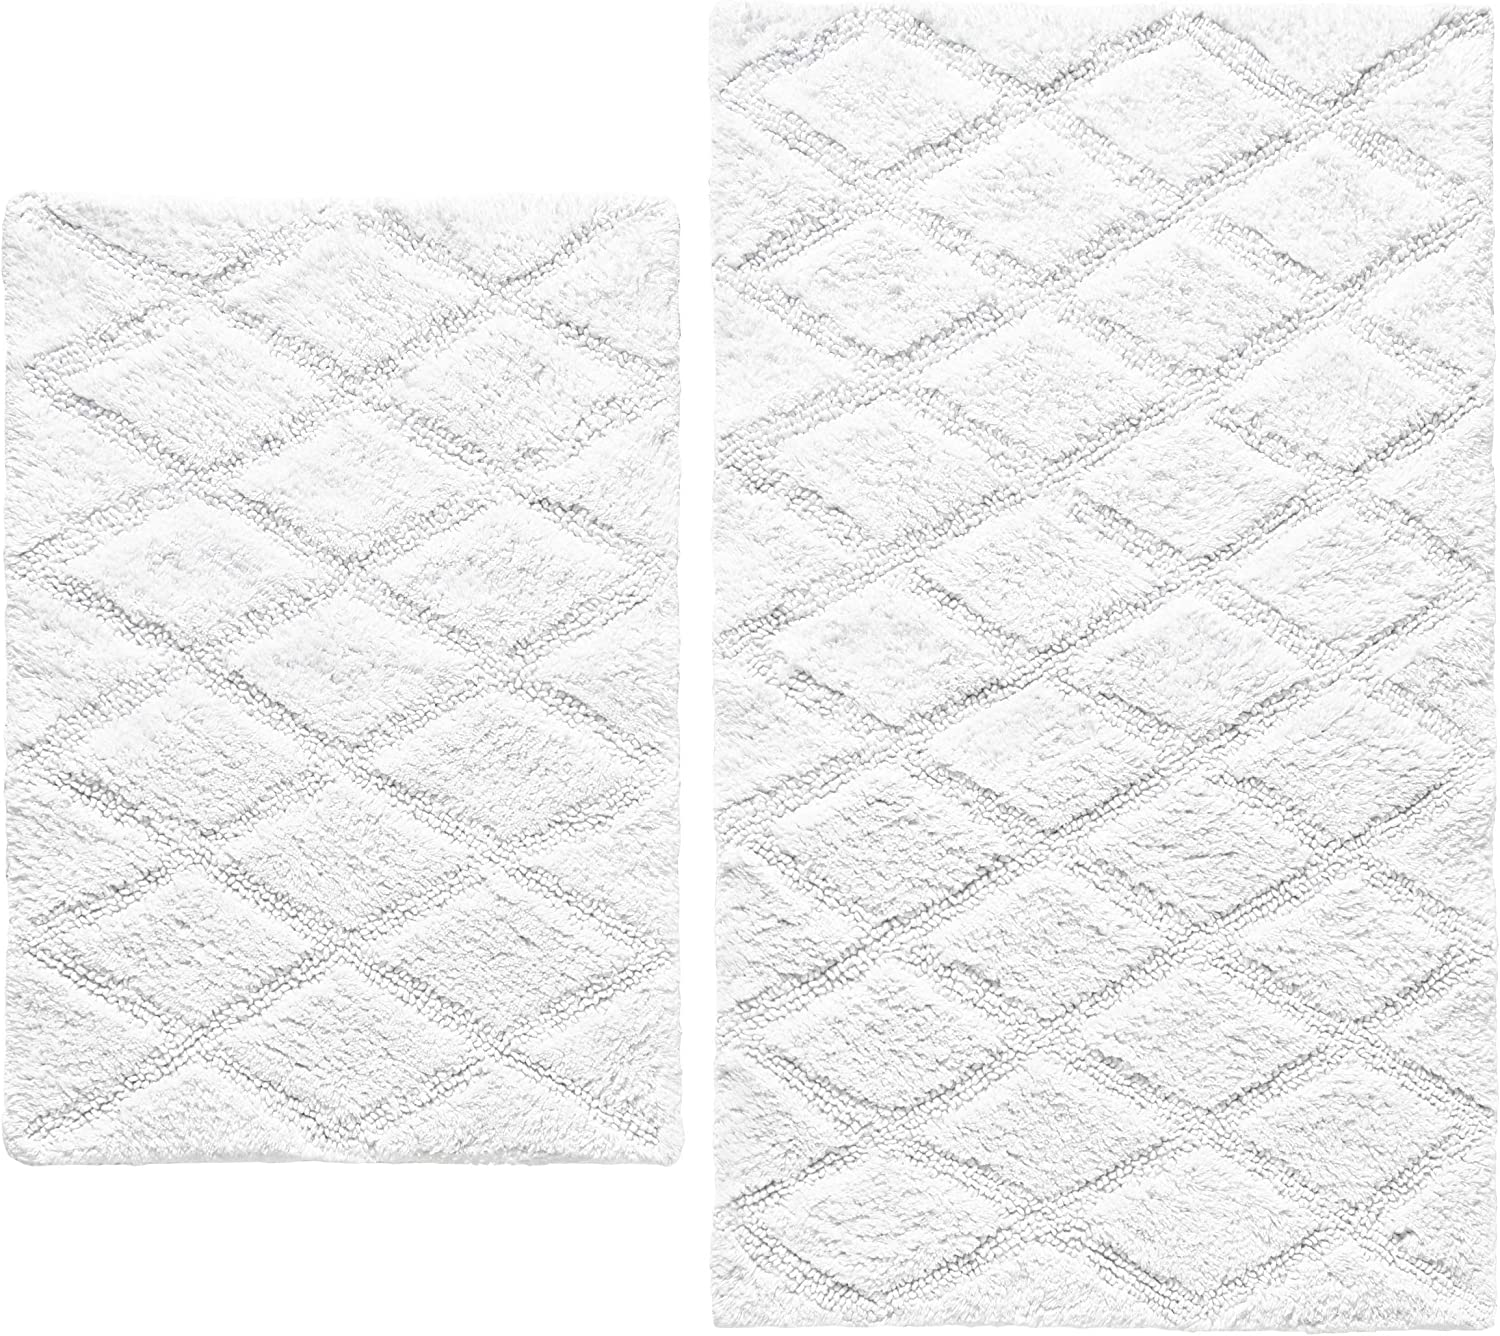 Vera Wang   Tufted Diamond Collection   Soft and Absorbent, Plush Reversible Bath Rug Set, Modern Designer Style for Bathroom Décor, 2-Piece, White,USHS6D1117231